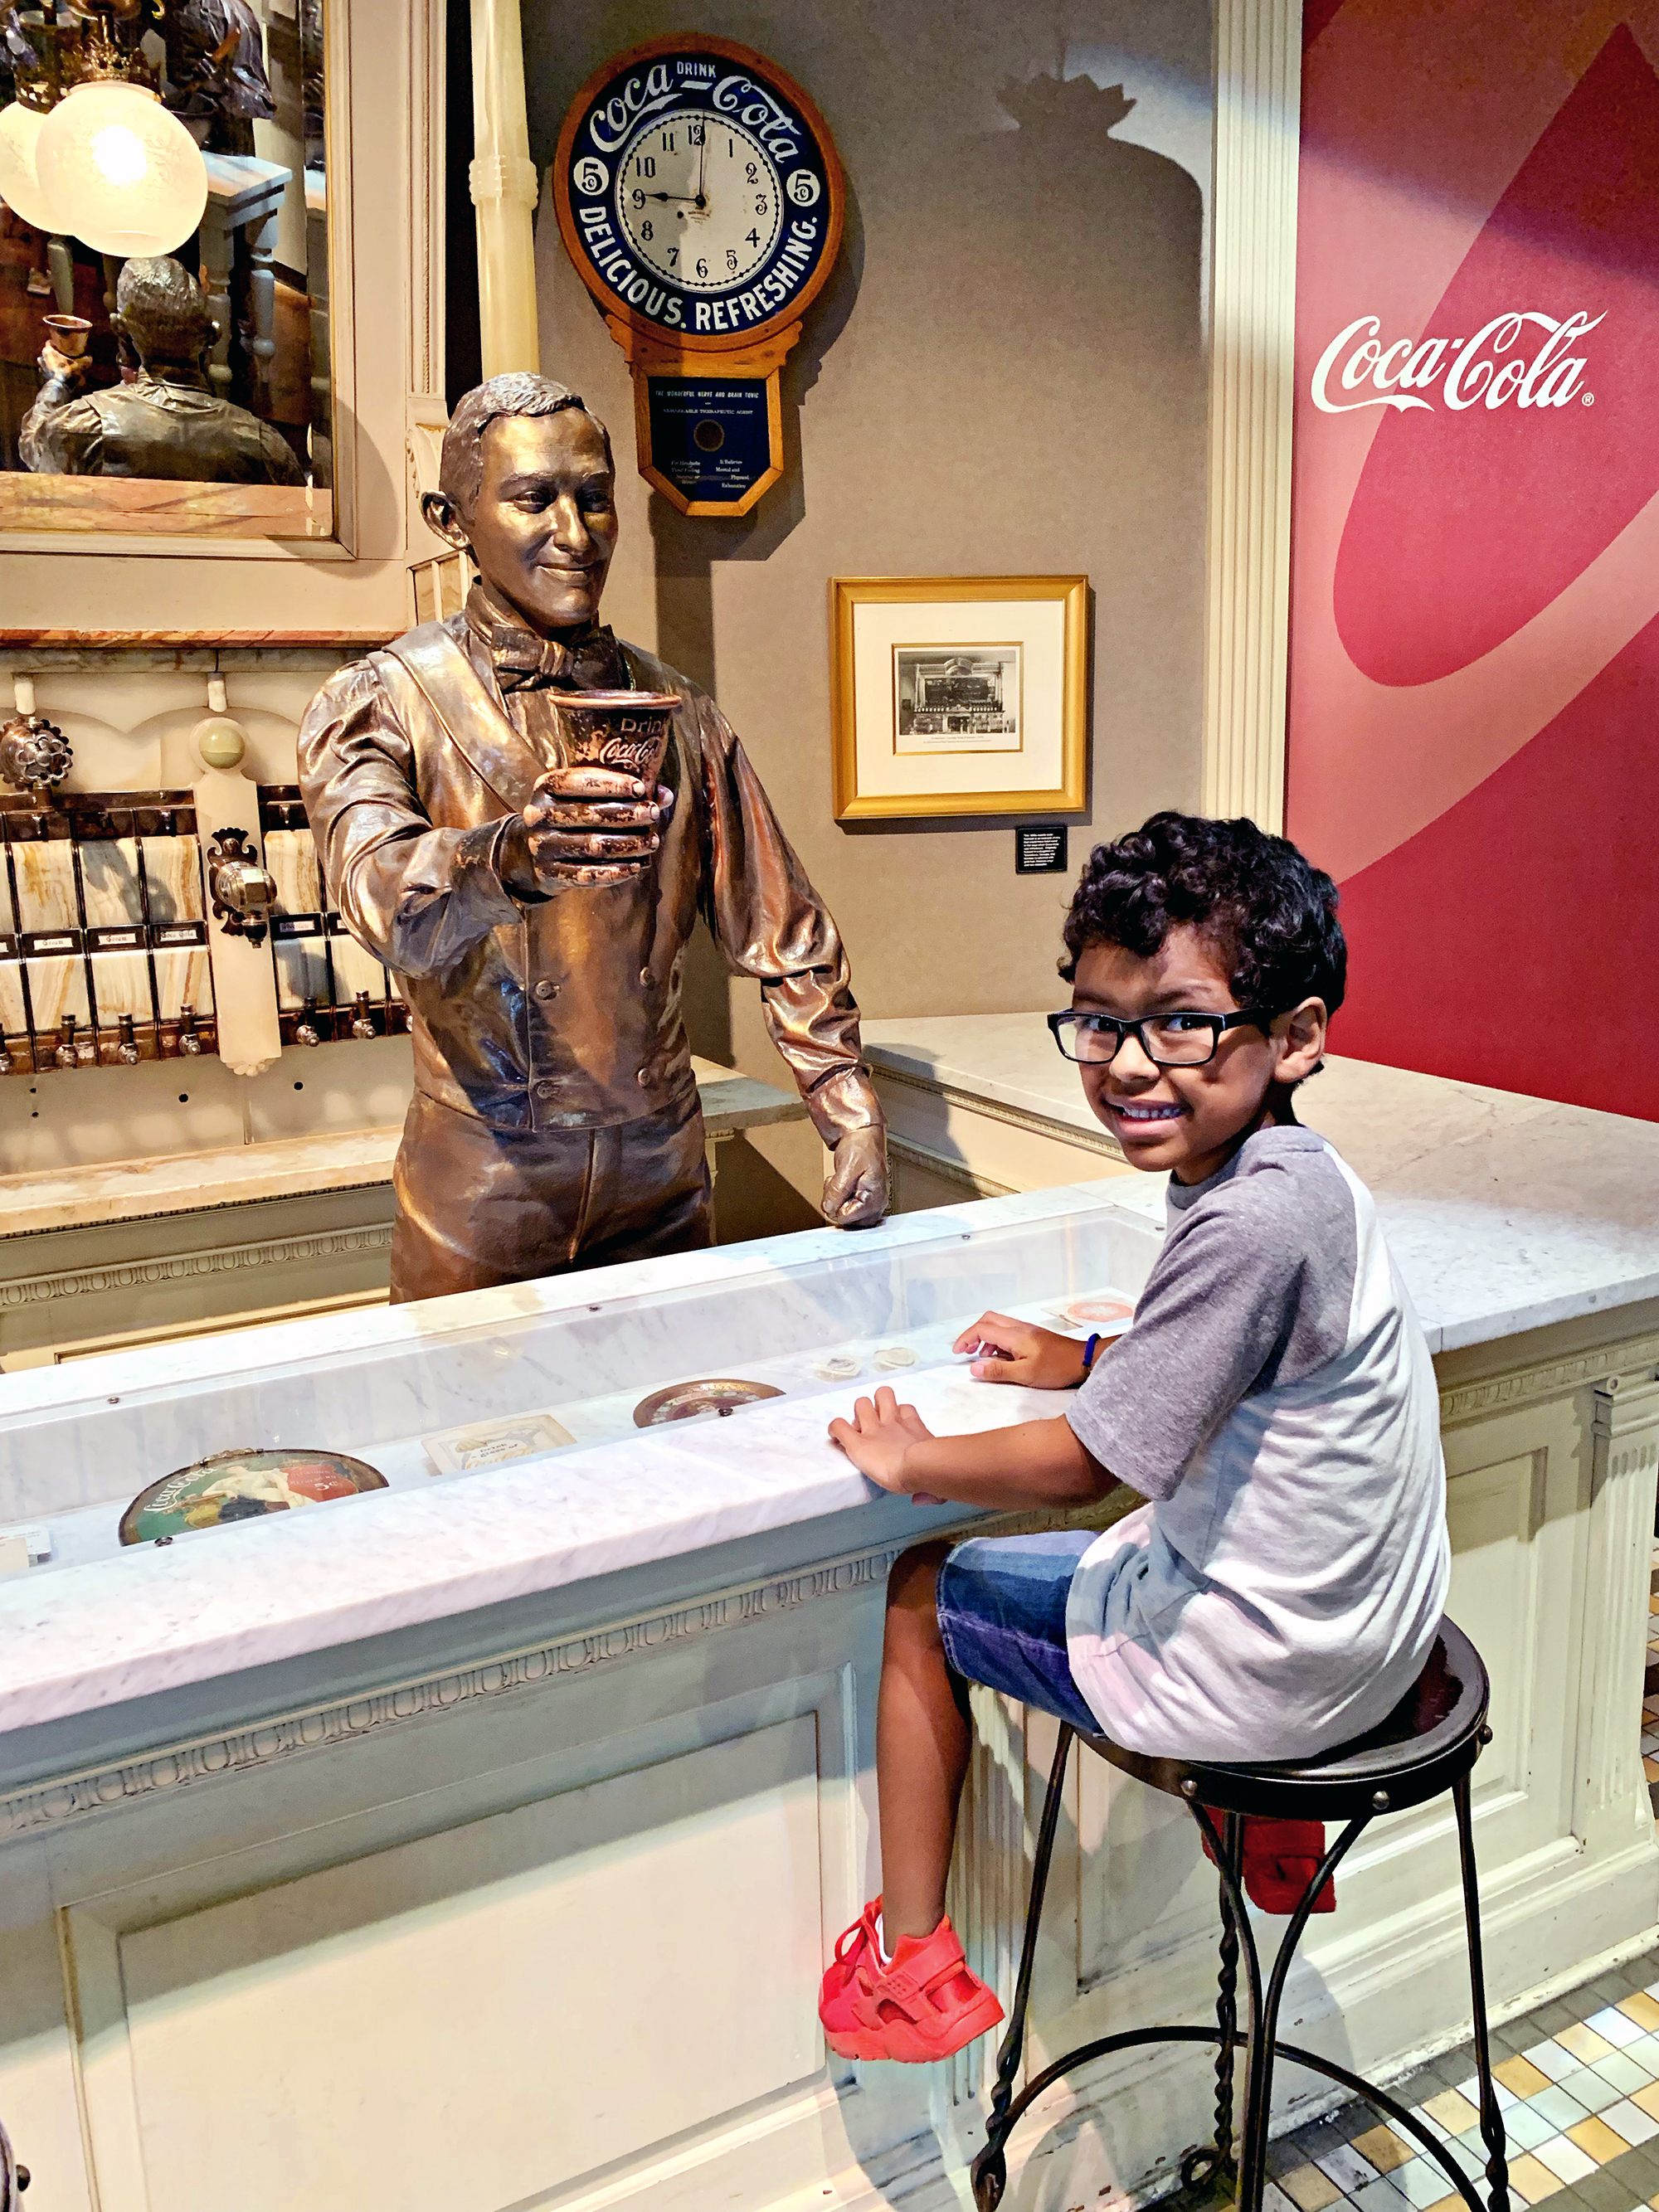 Kids will think its fun to sit at an old soda fountain at World of Coa-Cola